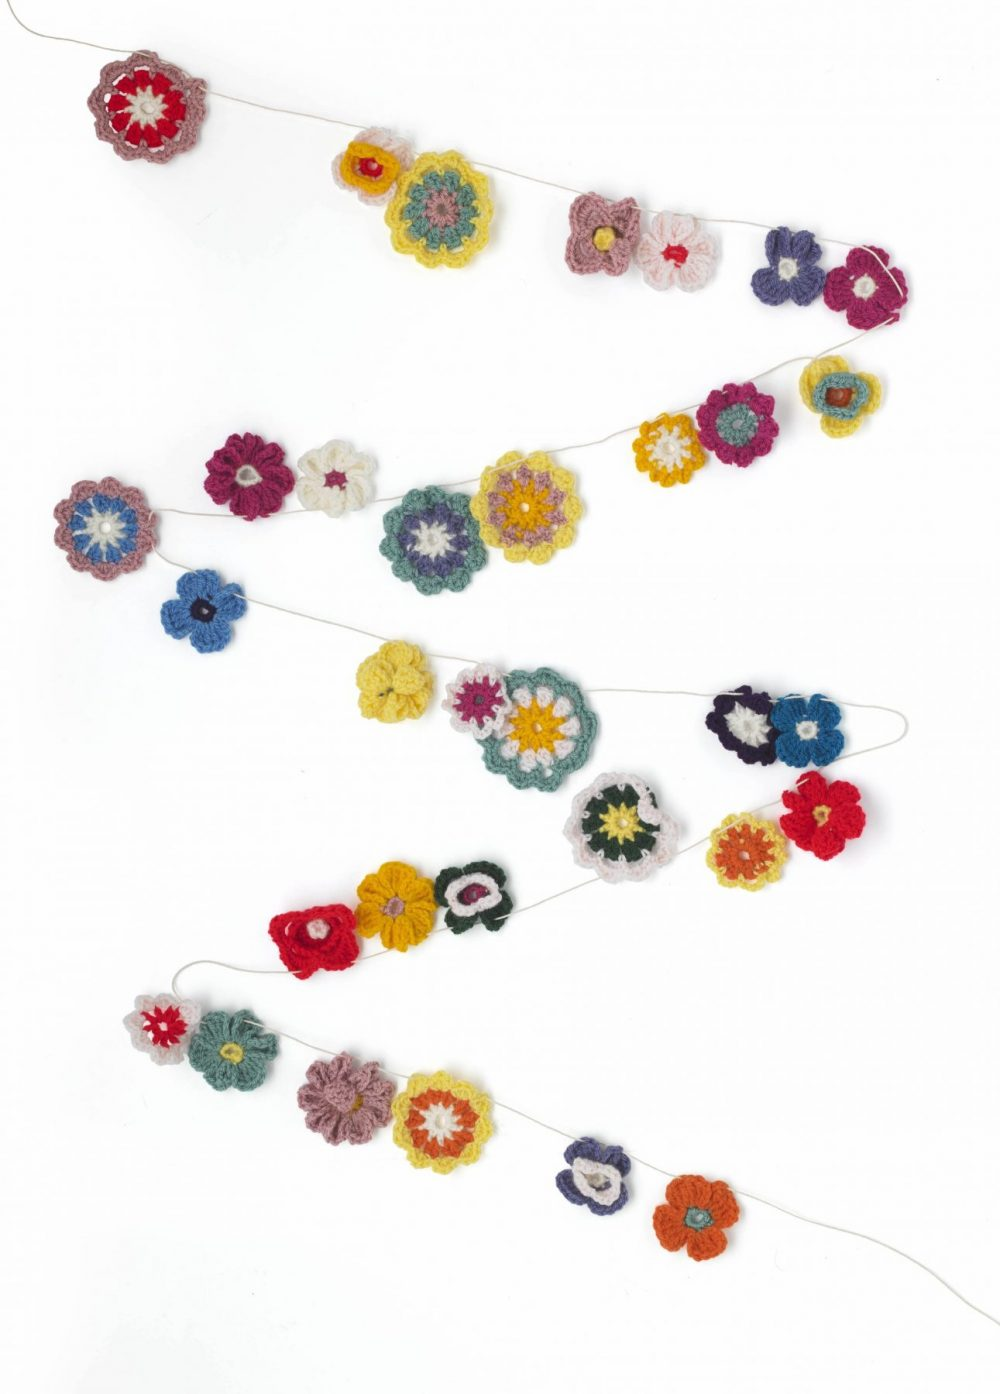 10 Free Summer Crochet Patterns - Garden Garland